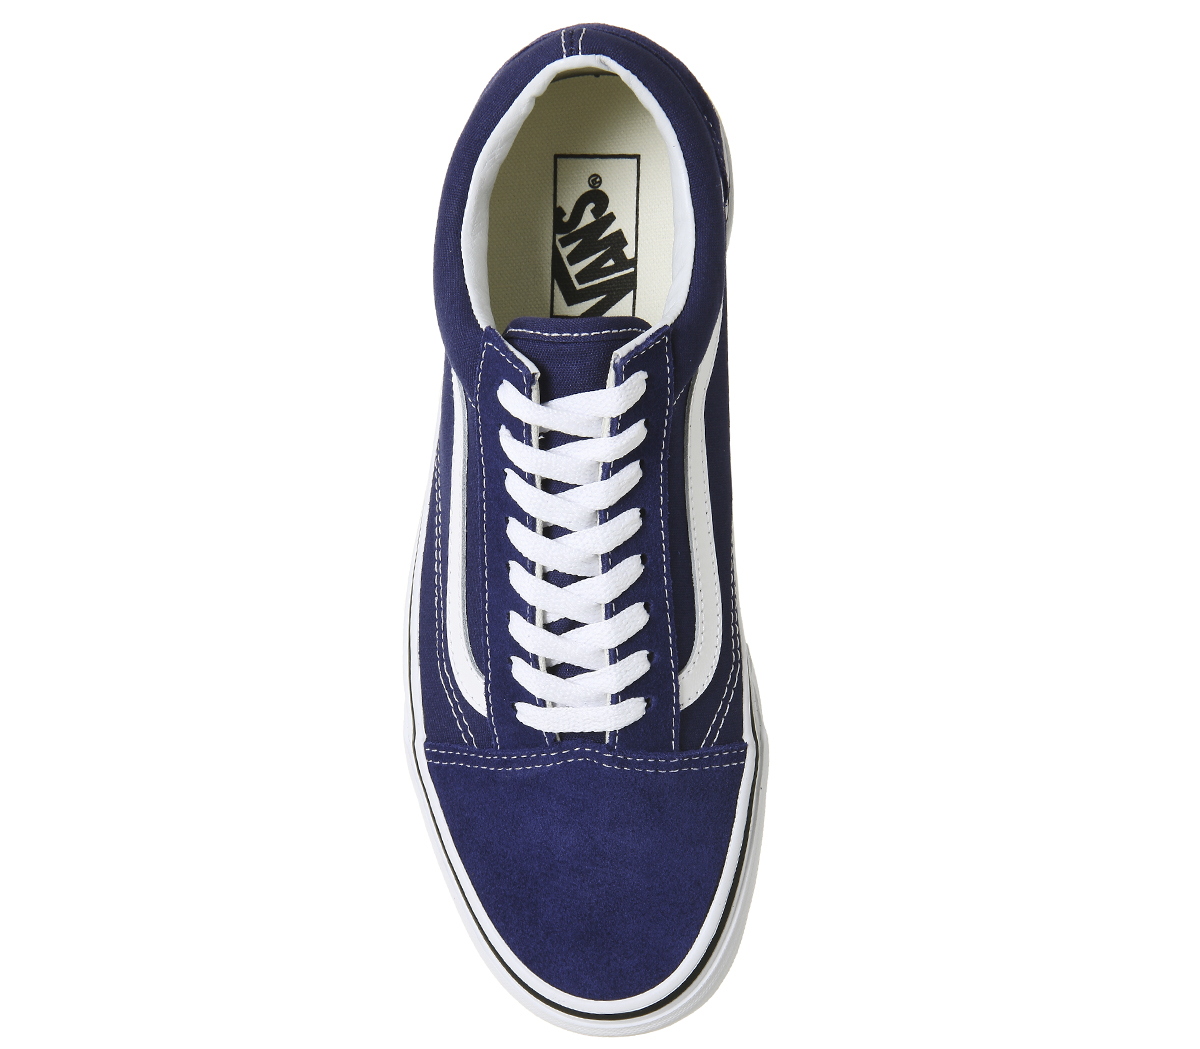 905a238c2 Sentinel Mens Vans Old Skool Trainers ESTATE BLUE TRUE WHITE Trainers Shoes